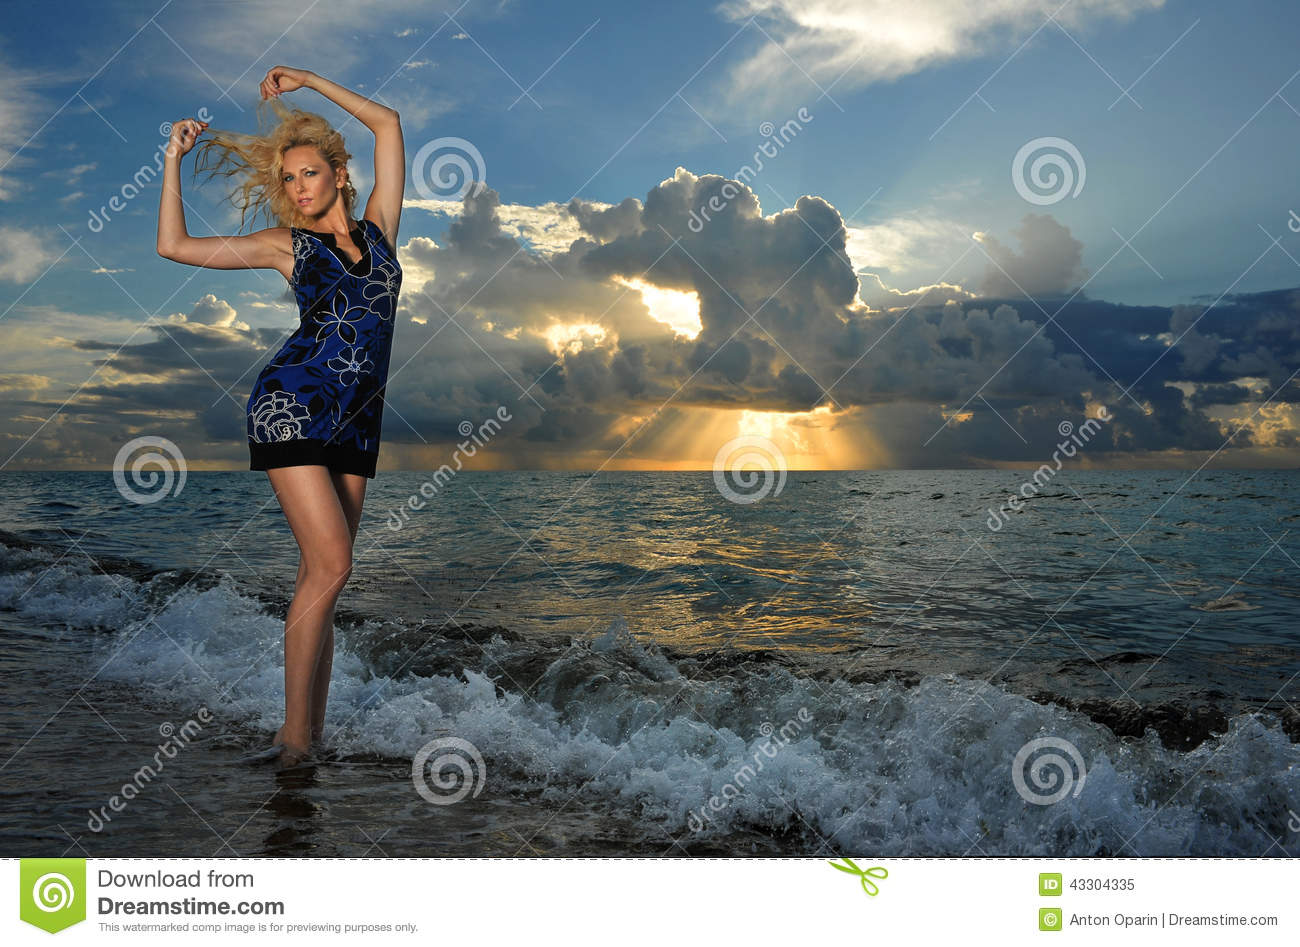 Model posing in beach dress at early morning sunrise